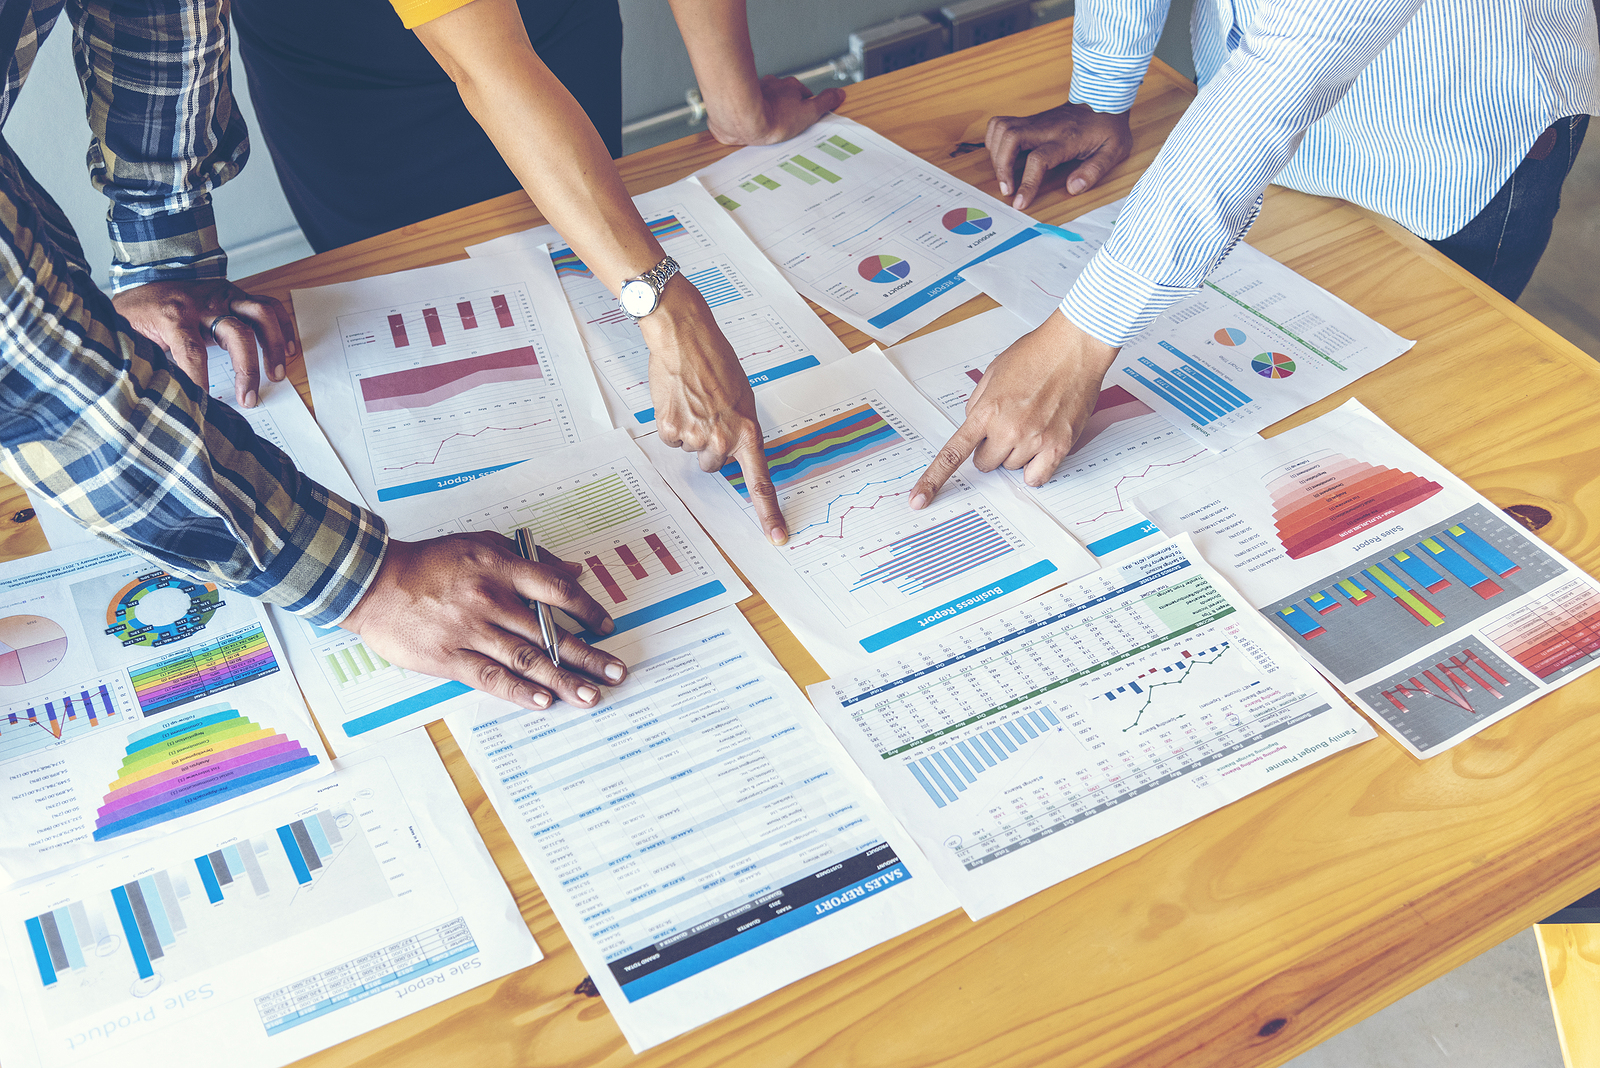 6 Ways To Increase The Value Of Your Startup Business